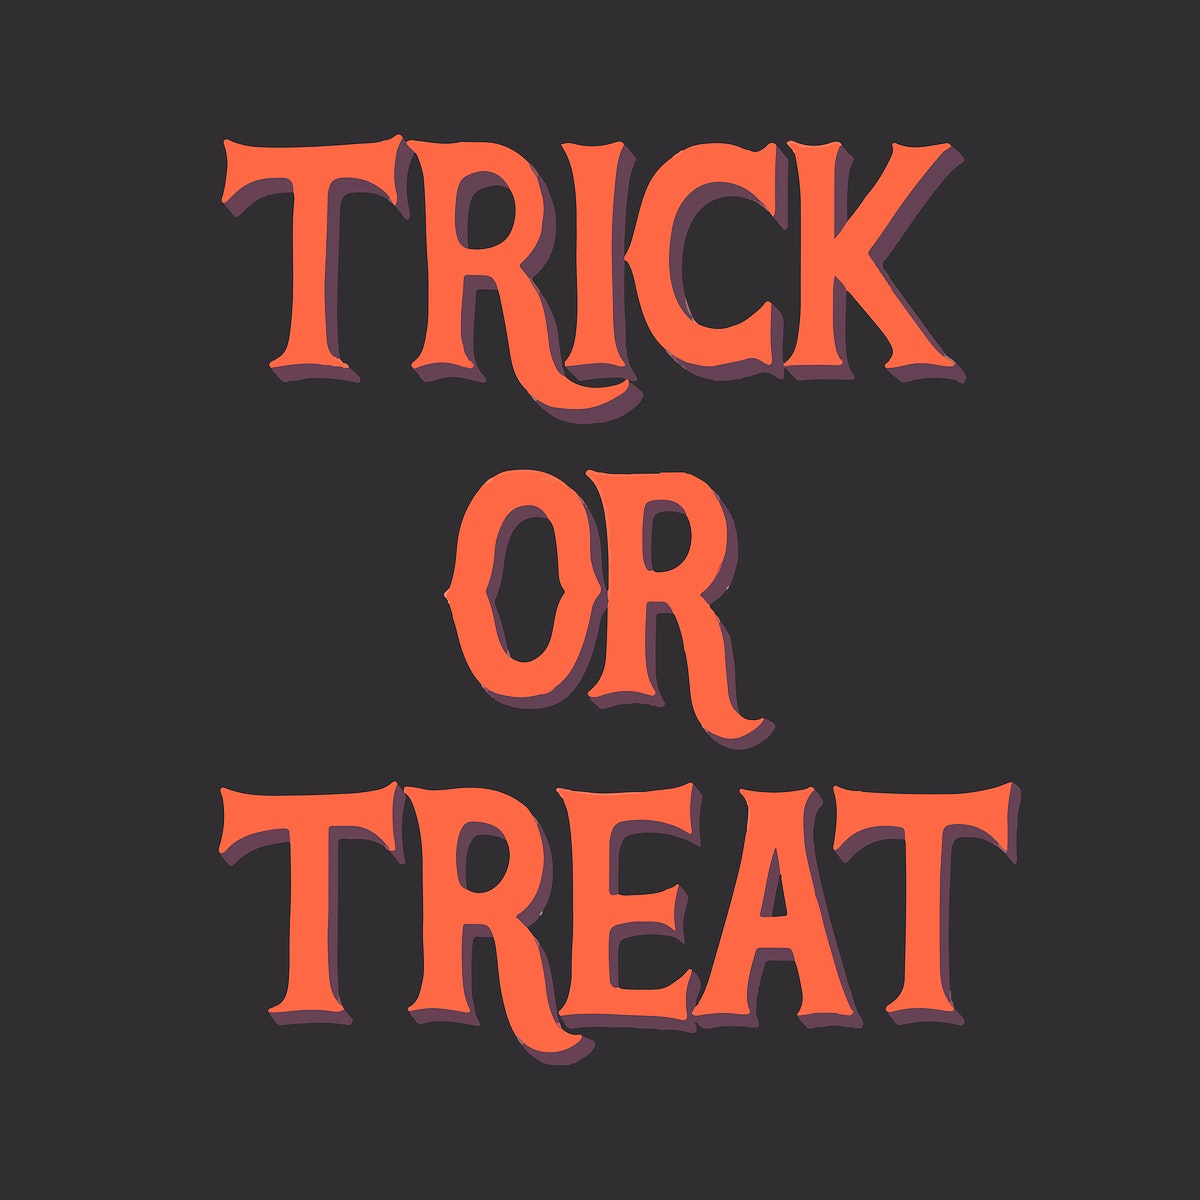 Trick or treat Halloween graphic